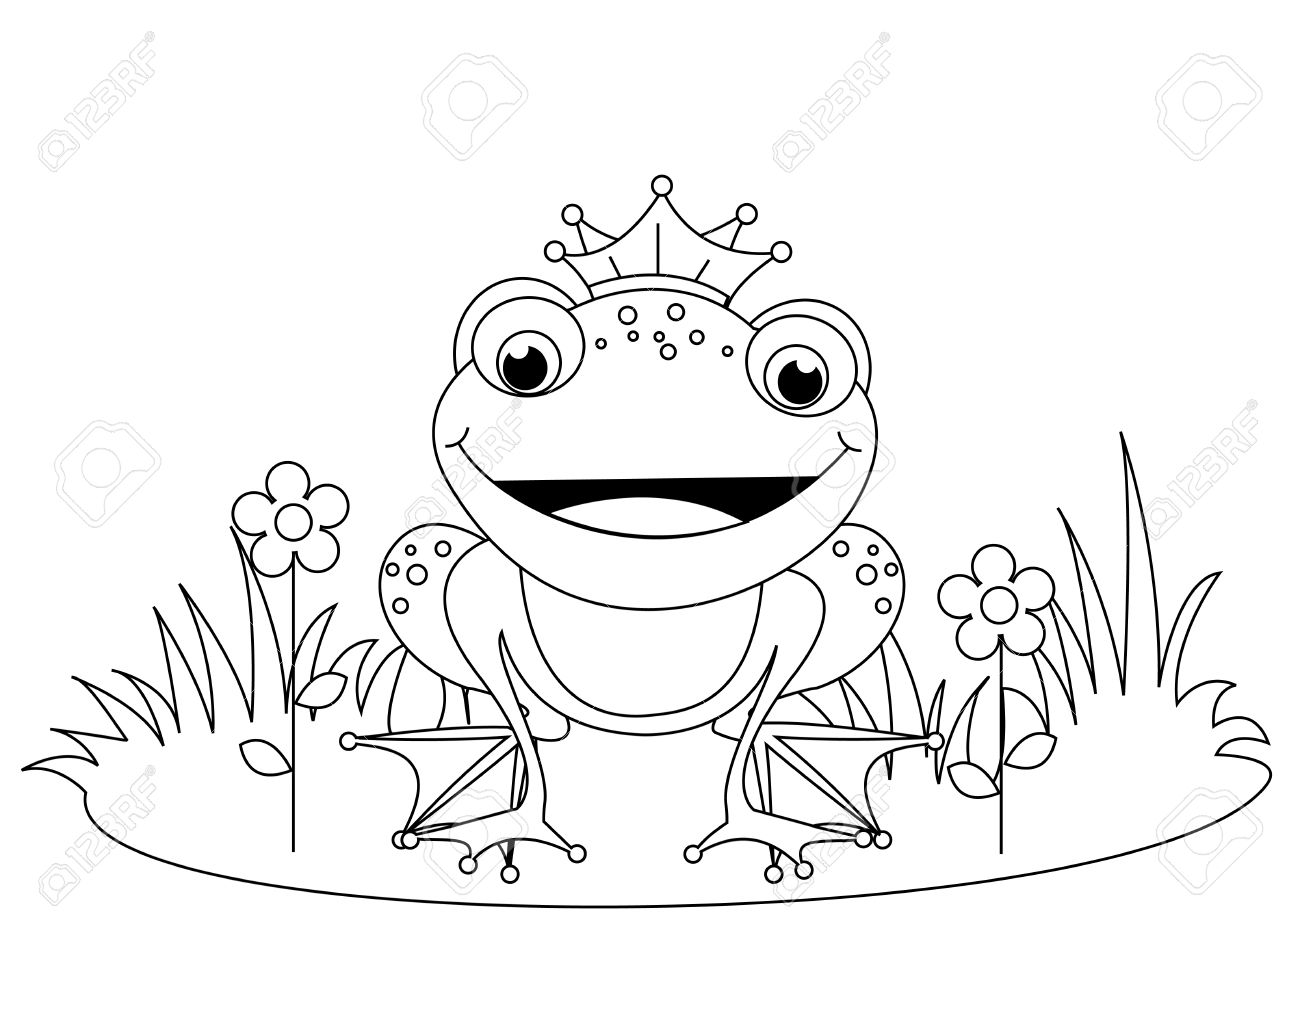 cute frog prince coloring book page for kindergarten kids stock vector 38909480 - Frog Prince Coloring Page